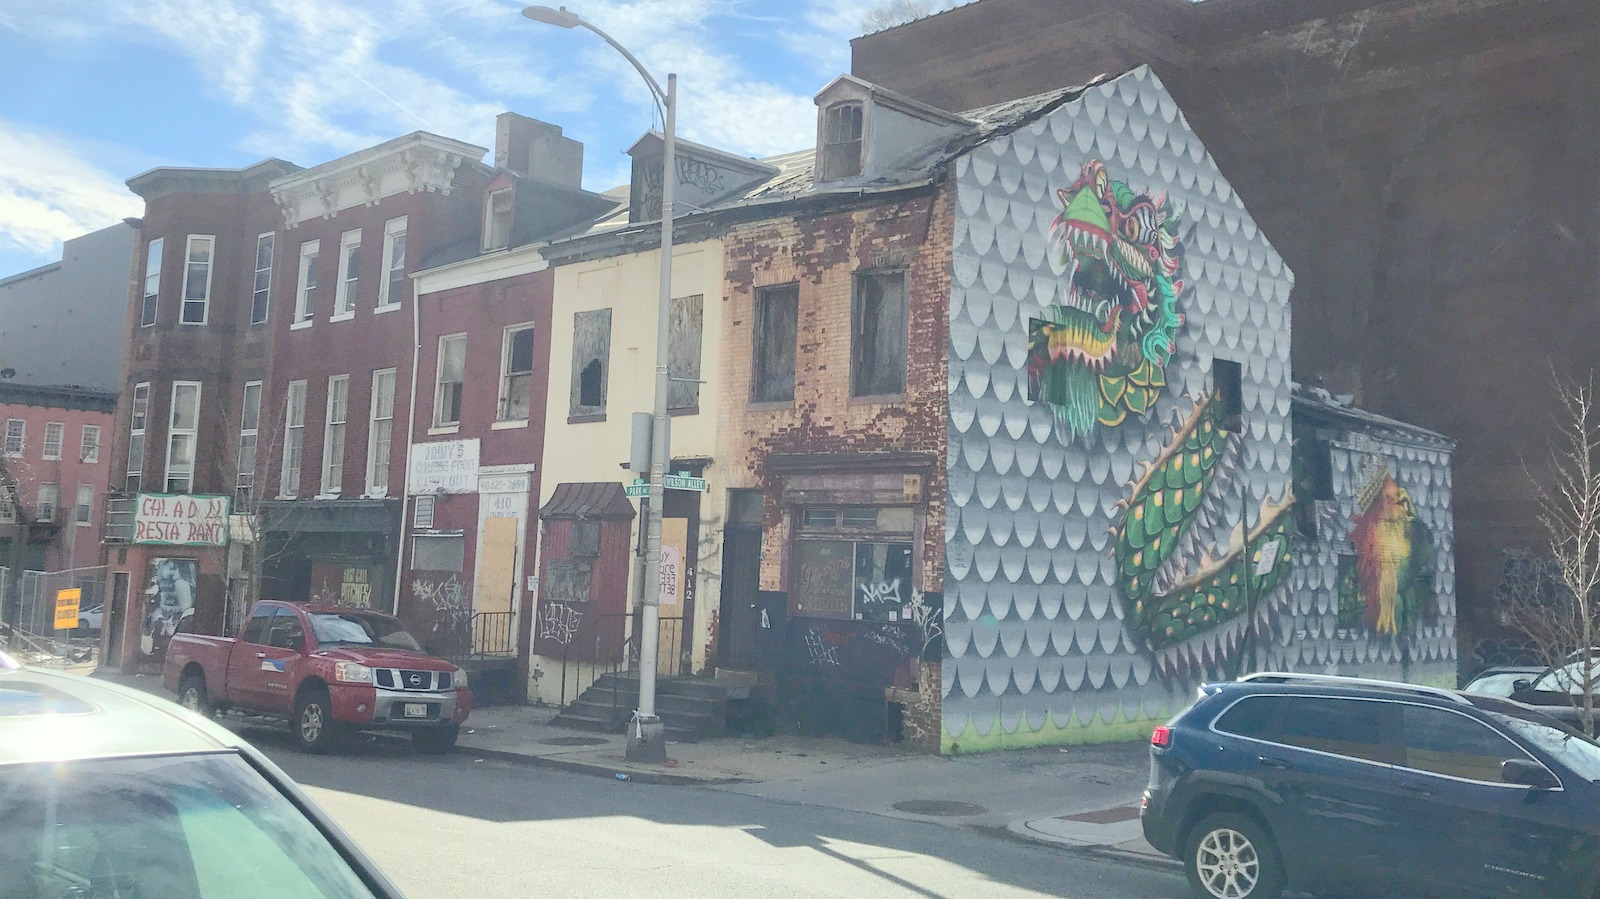 Building facades on this block on Baltimore's Park Street would be preserved and the spaces leased to Asian-themed eateries, the developer says. (Chase Hoffberger)